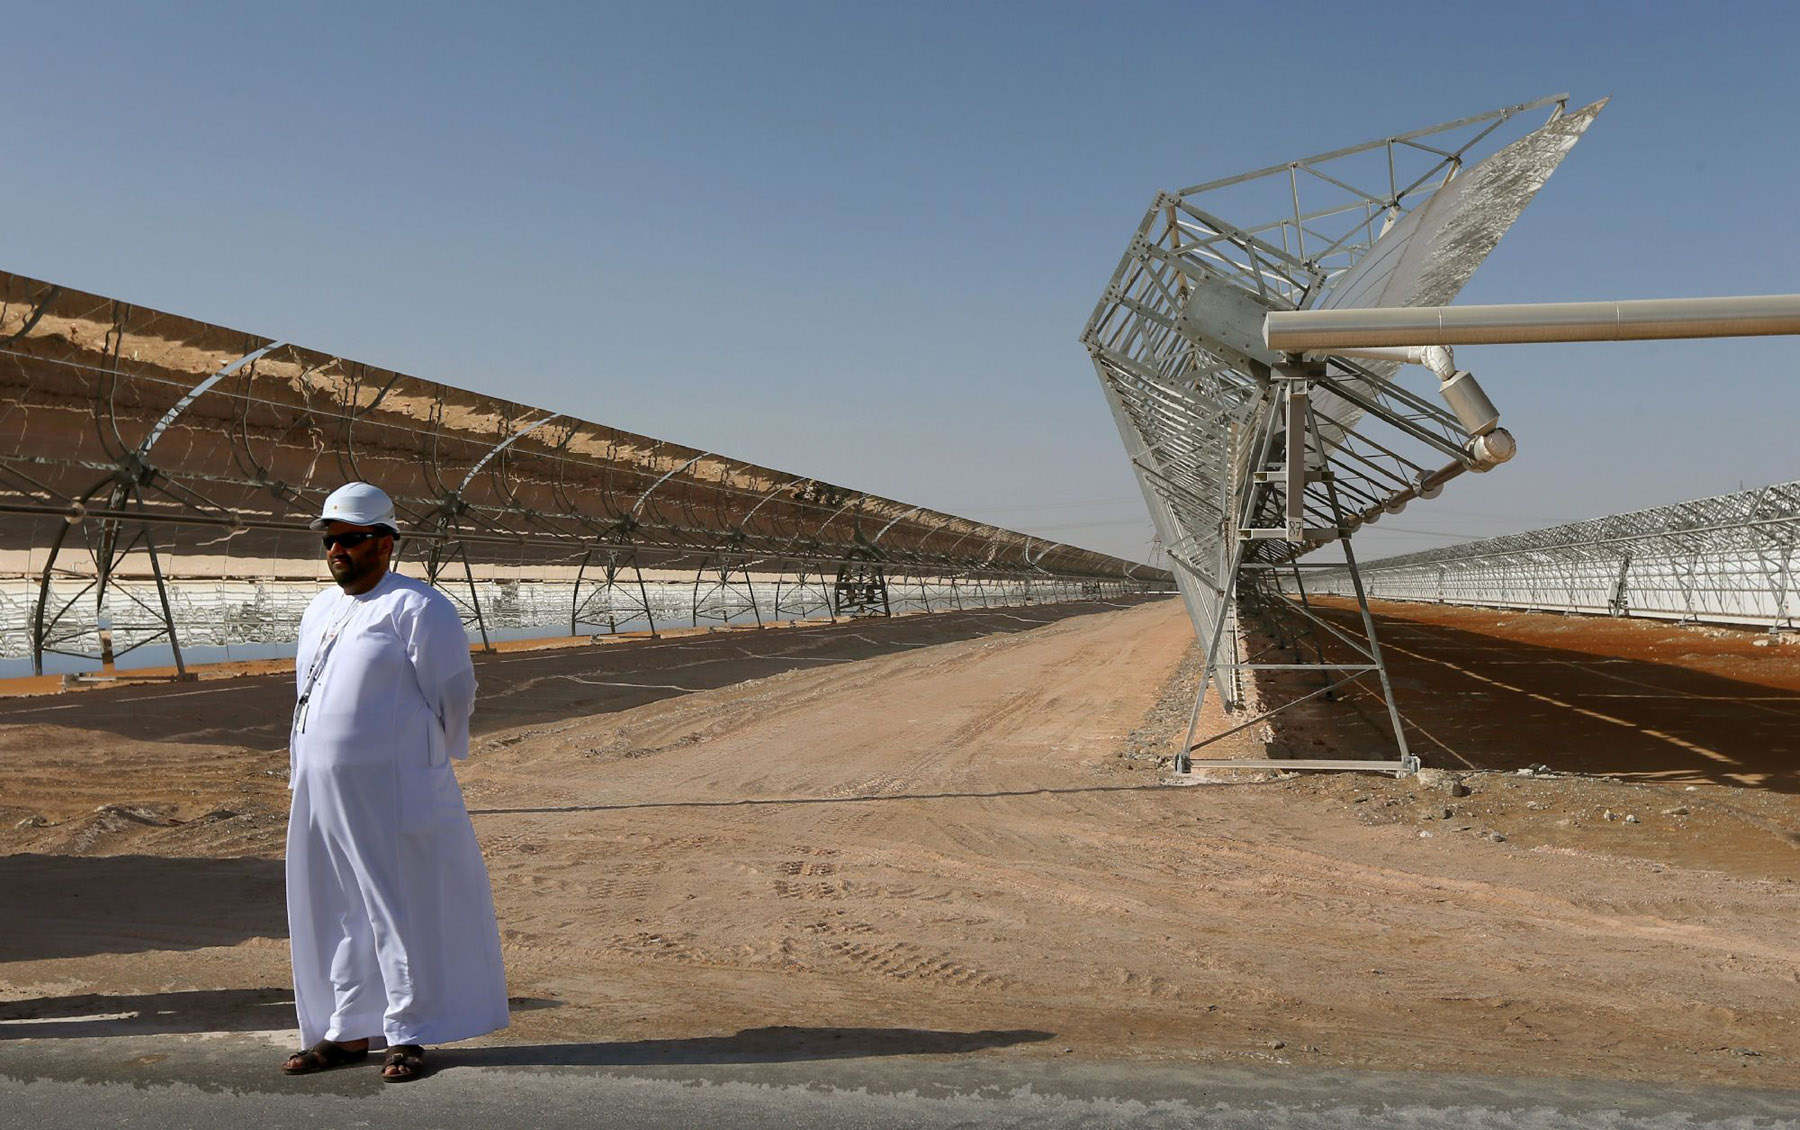 An Emirati man stands in front of rows of parabolic shaped mirrors at the Shams 1, Concentrated Solar power (CSP) plant, in al-Gharibiyah district on the outskirts of Abu Dhabi. (AFP)